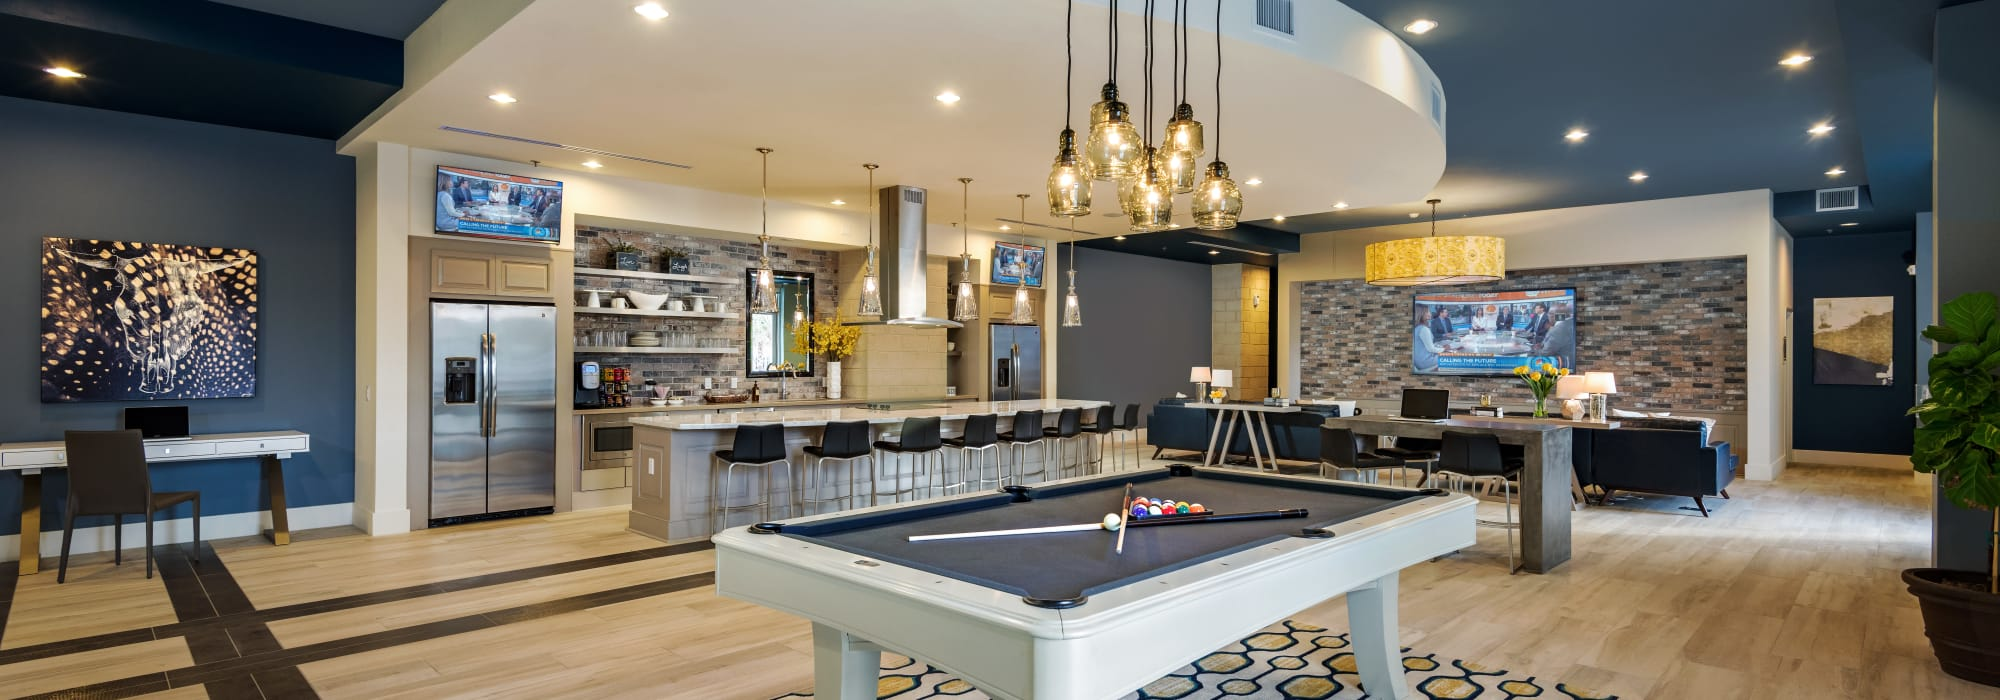 Billiards table and more in the resident clubhouse at Capital Place in Phoenix, Arizona